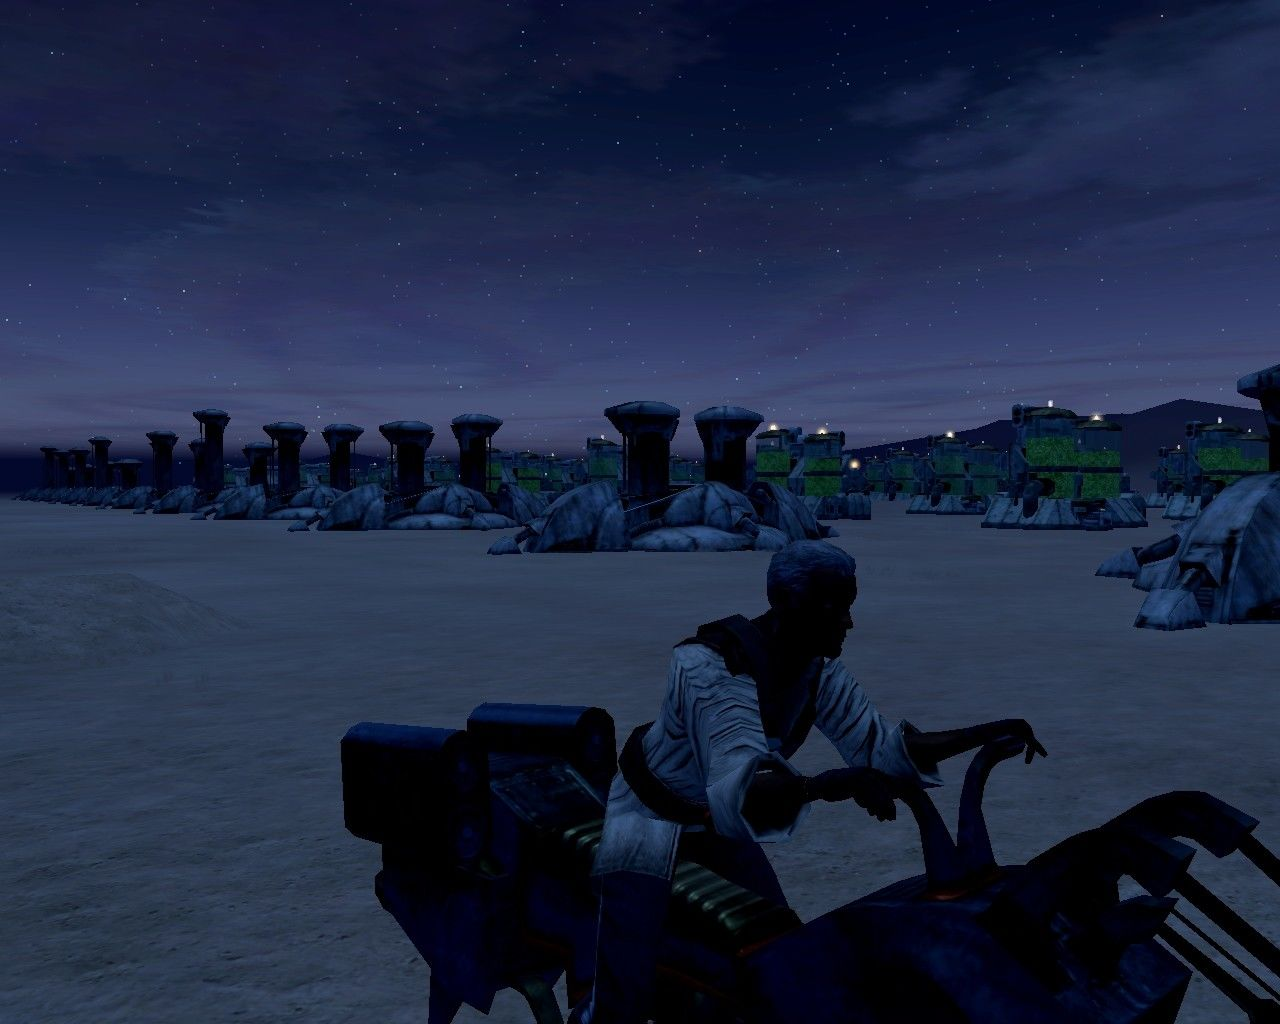 Star Wars: Galaxies - An Empire Divided Windows Massive mining/harvesting operation on the flats of Tatooine, all player owned and operated. These kinds (and size) of farms were actually required to keep up with player resource demands.